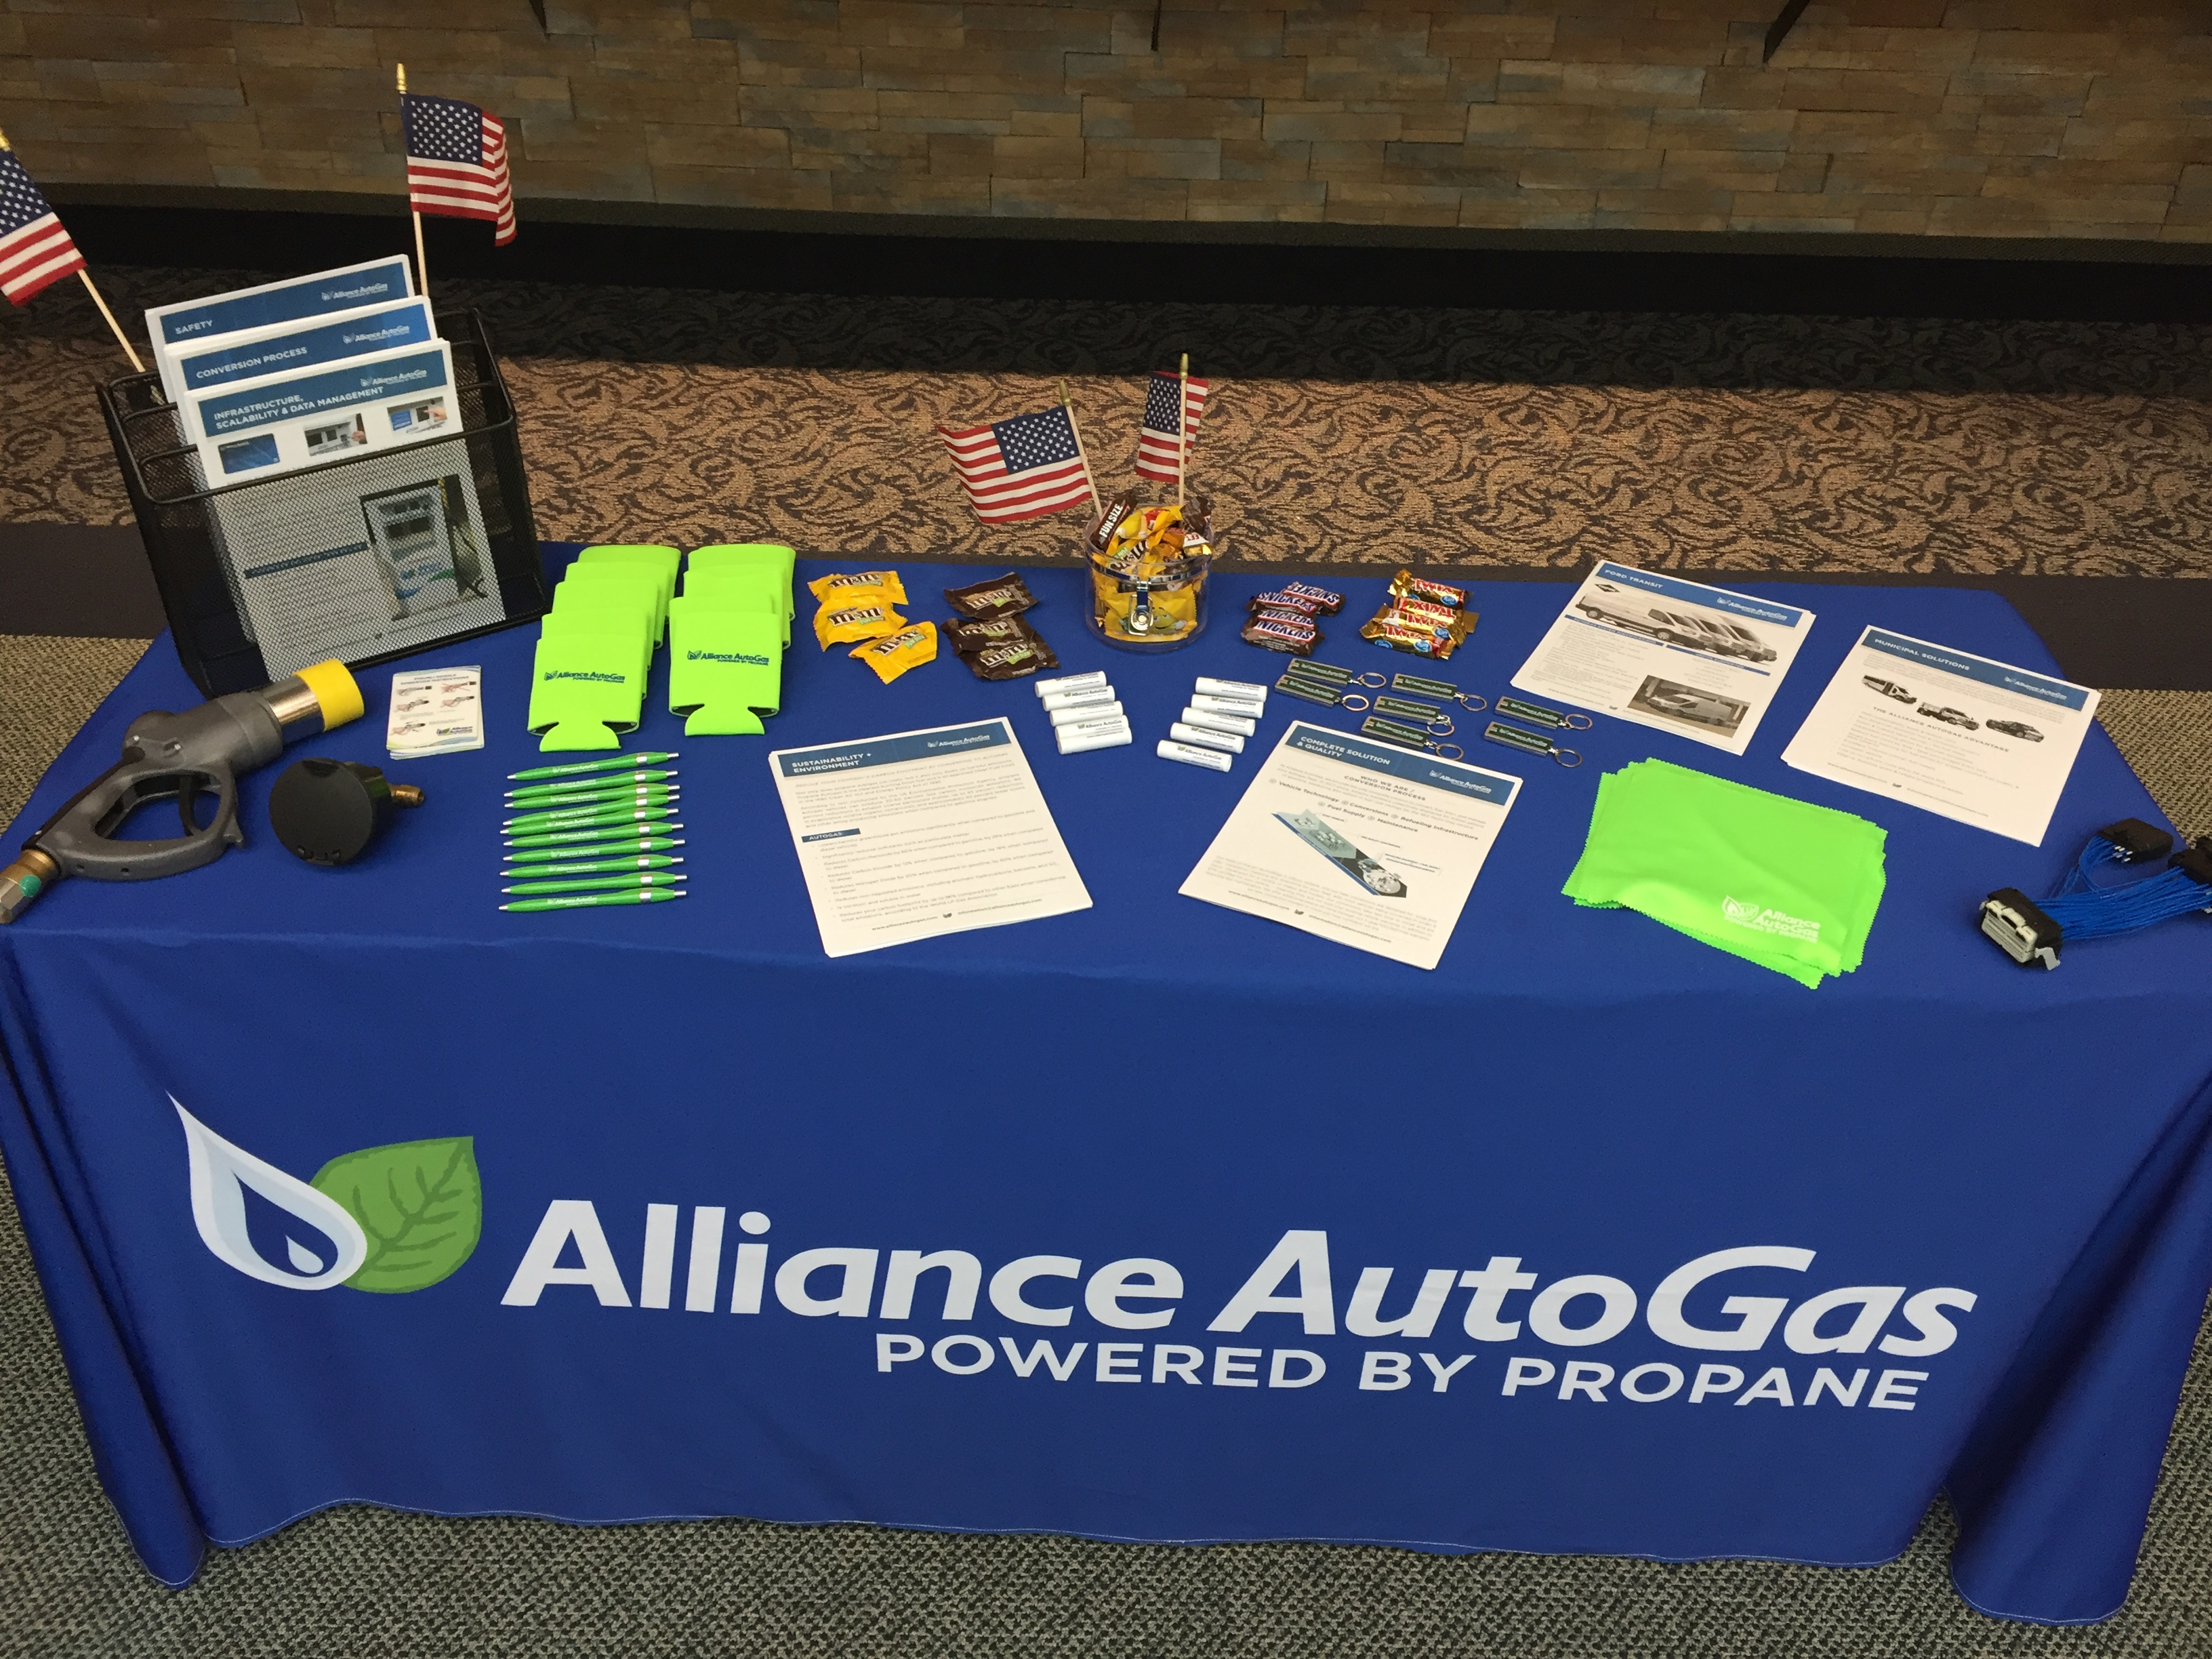 Alliance AutoGas Swag Table Set Up At Expo - Blue Table Cloth with Company Logo